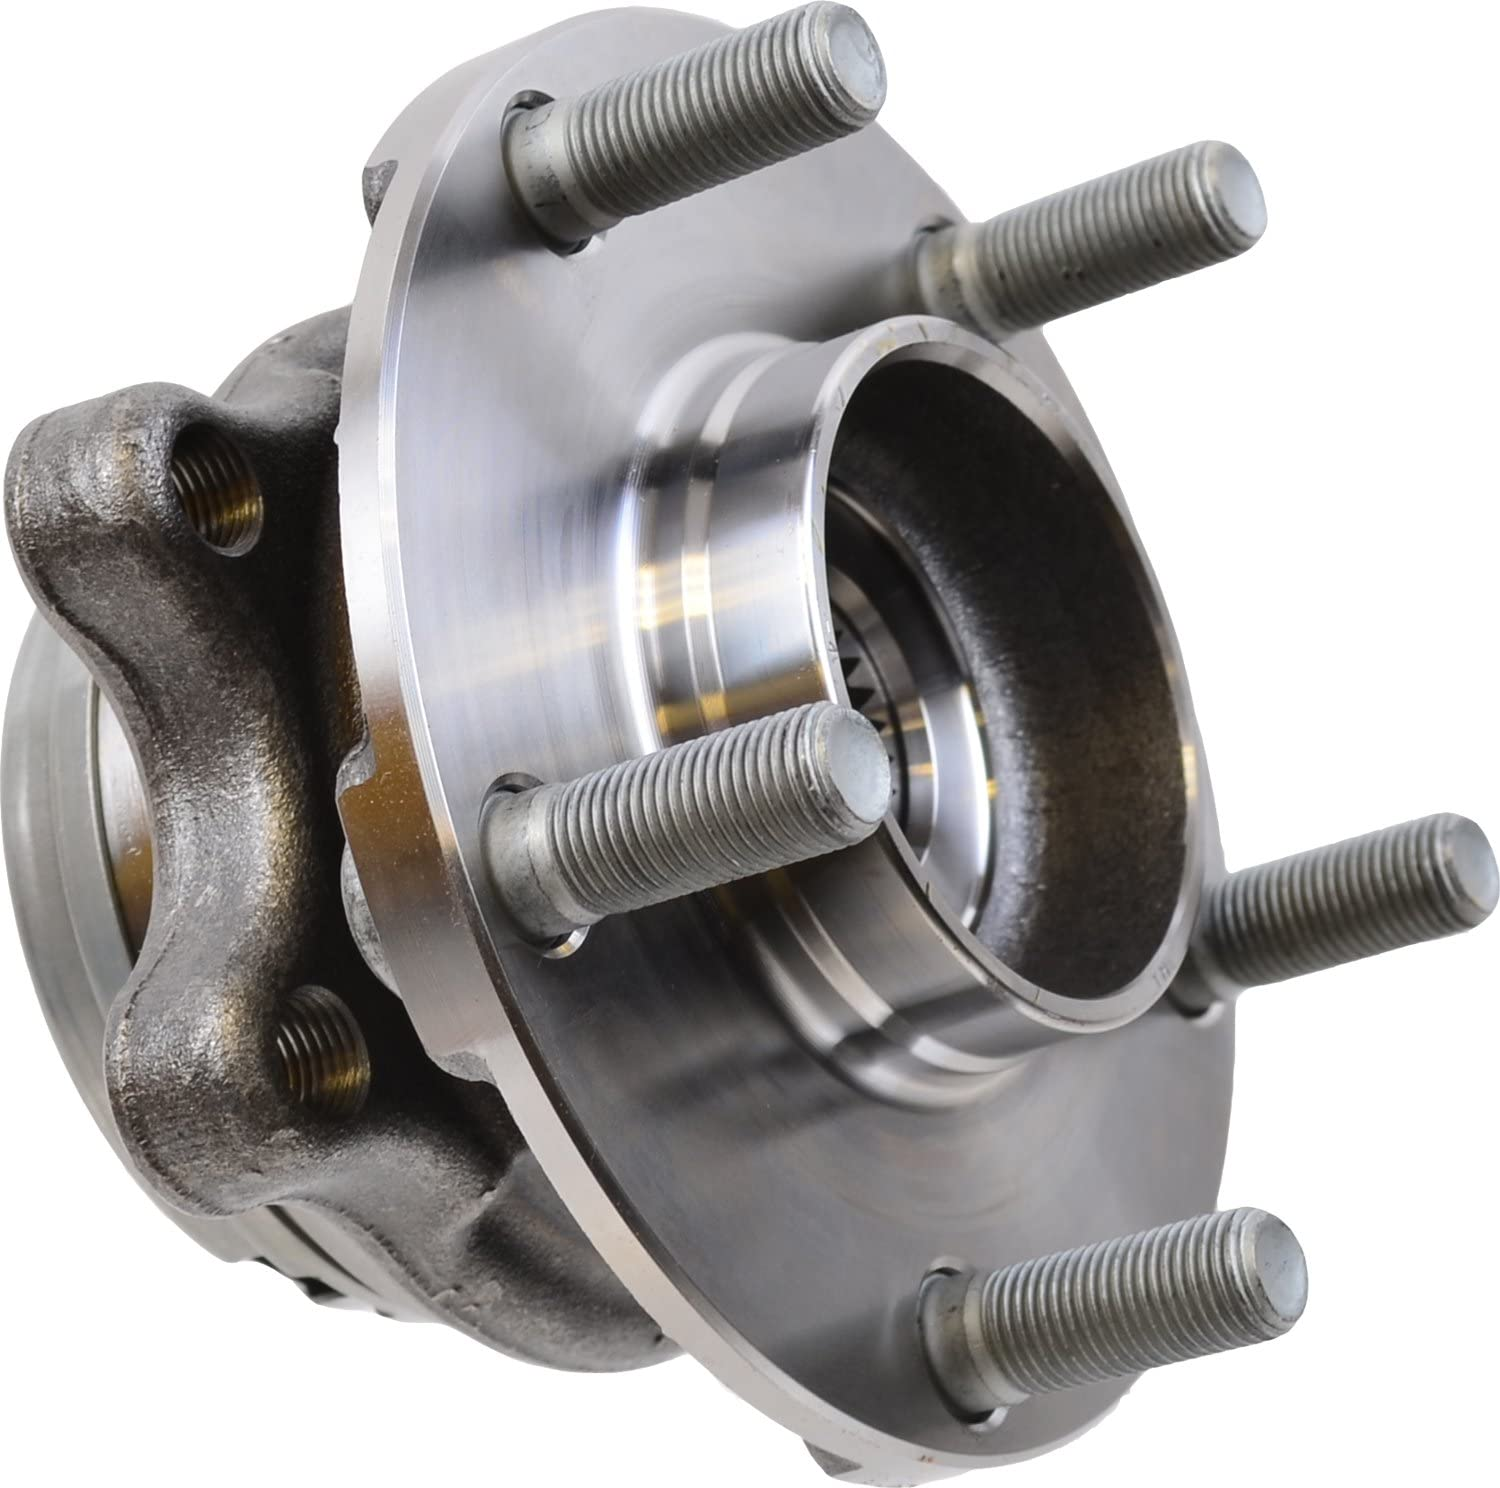 SKF Super beauty Limited price sale product restock quality top BR930892 Wheel Bearing Assembly and Hub